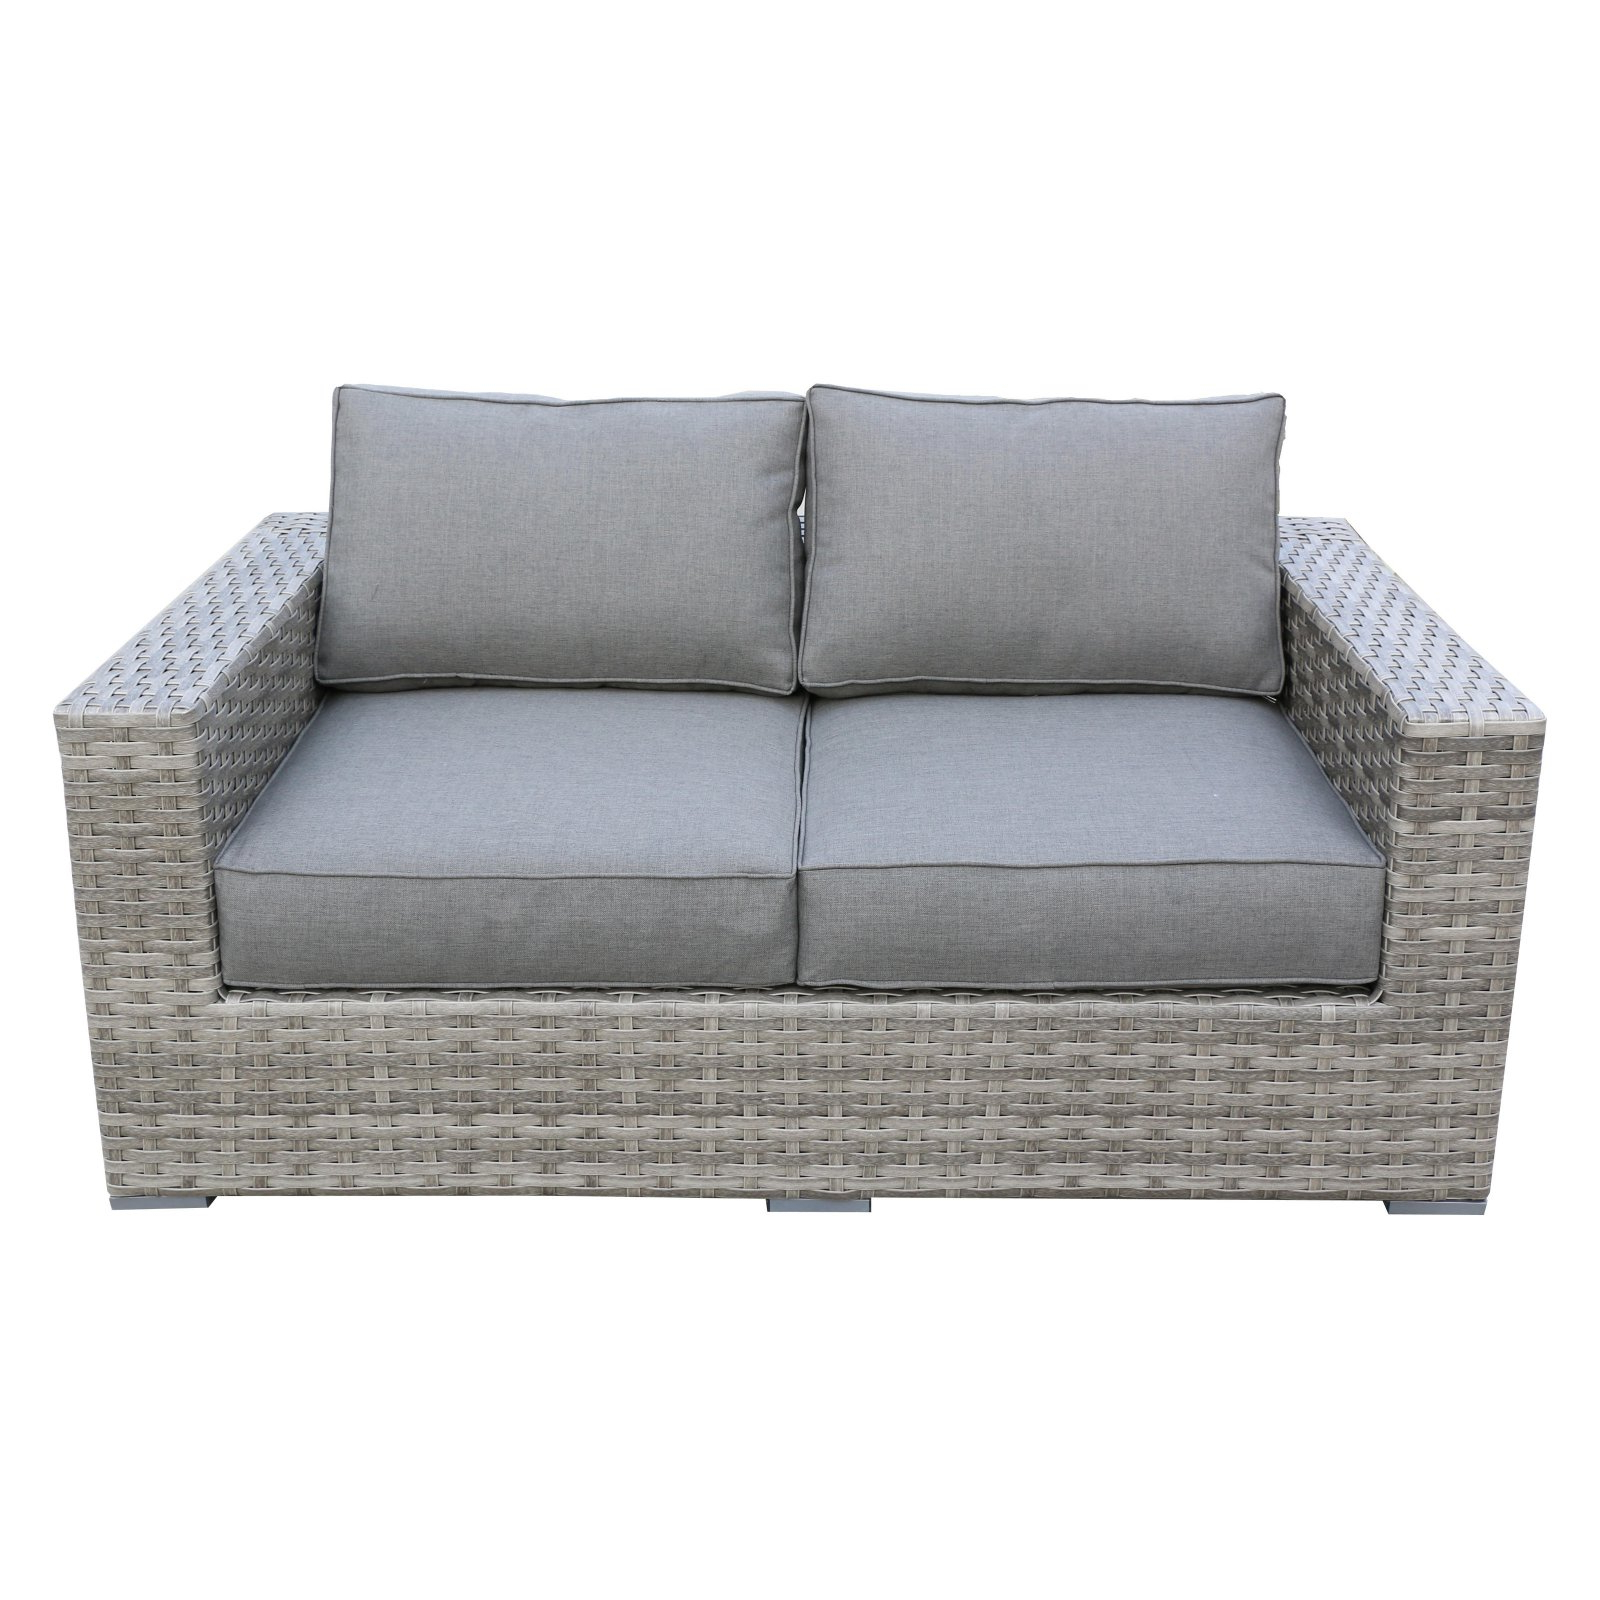 Outdoor Teva Patio Bali Wicker Patio Loveseat In 2019 Intended For 2020 Keever Patio Sofas With Sunbrella Cushions (View 13 of 20)